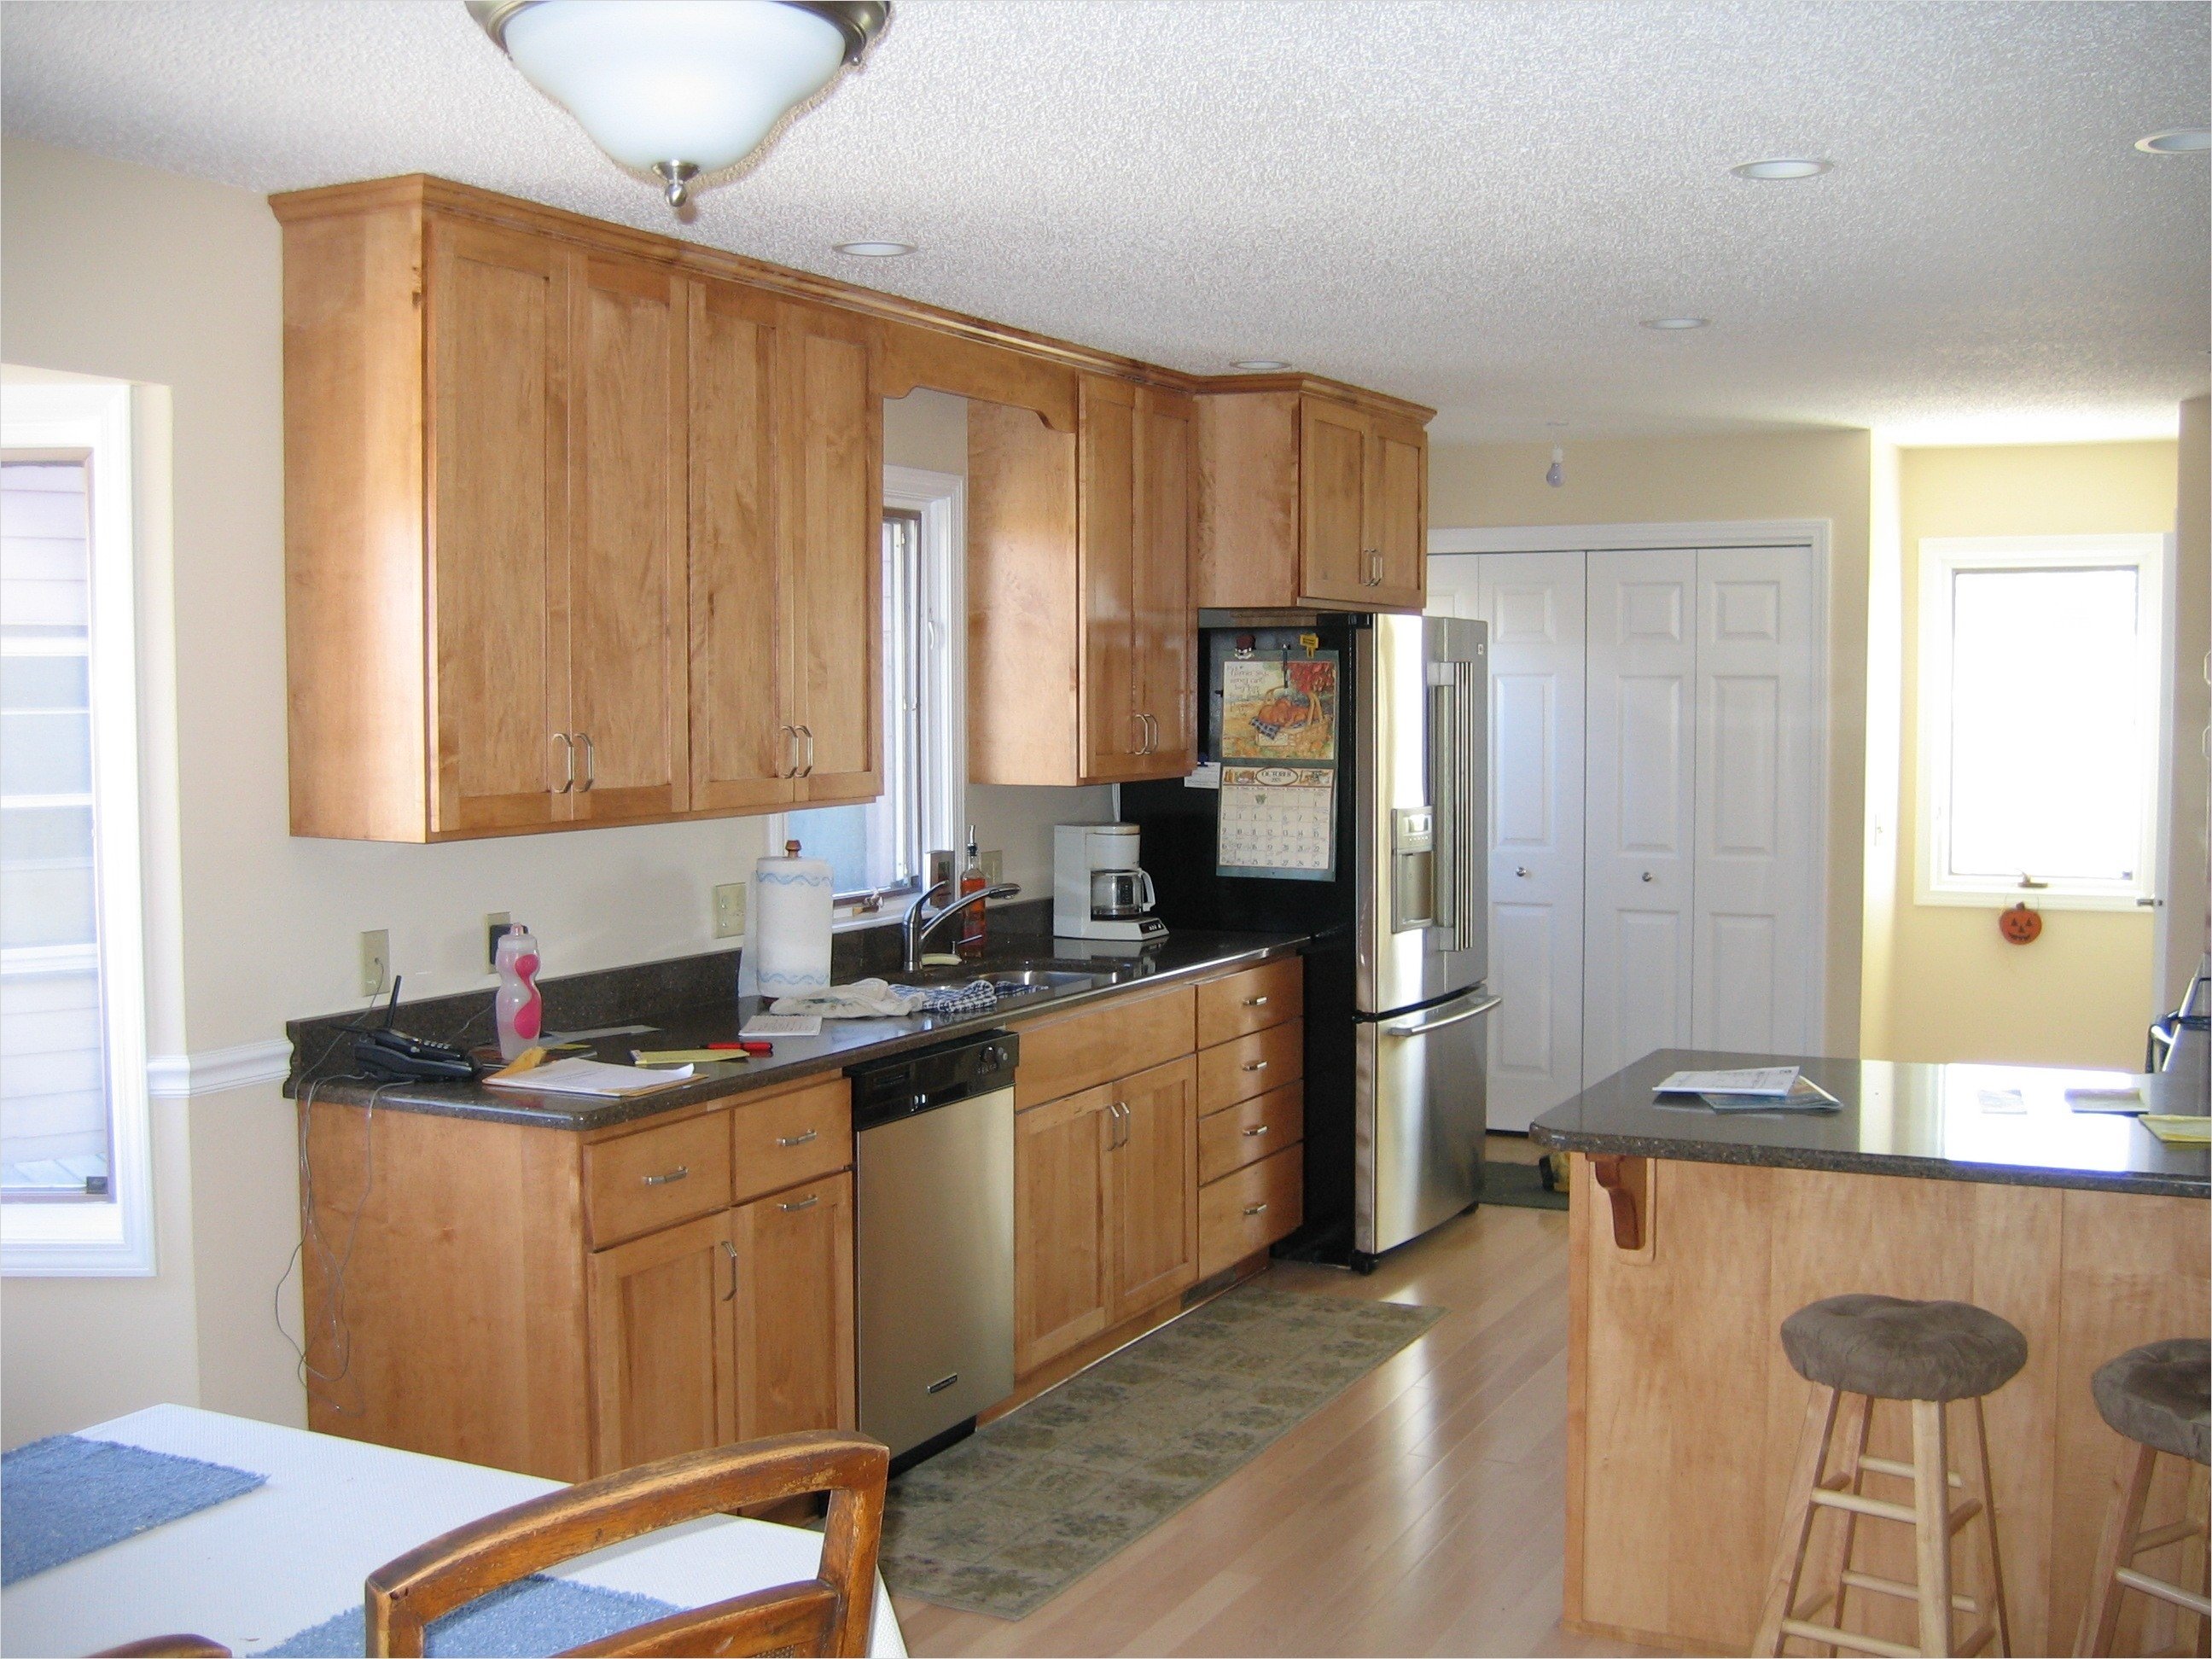 Kitchen with Maple Cabinets Color Ideas 34 Kitchen Kitchen Color Ideas with Maple Cabinets Trash Cans Bakeware Table Linens Pot Racks 2